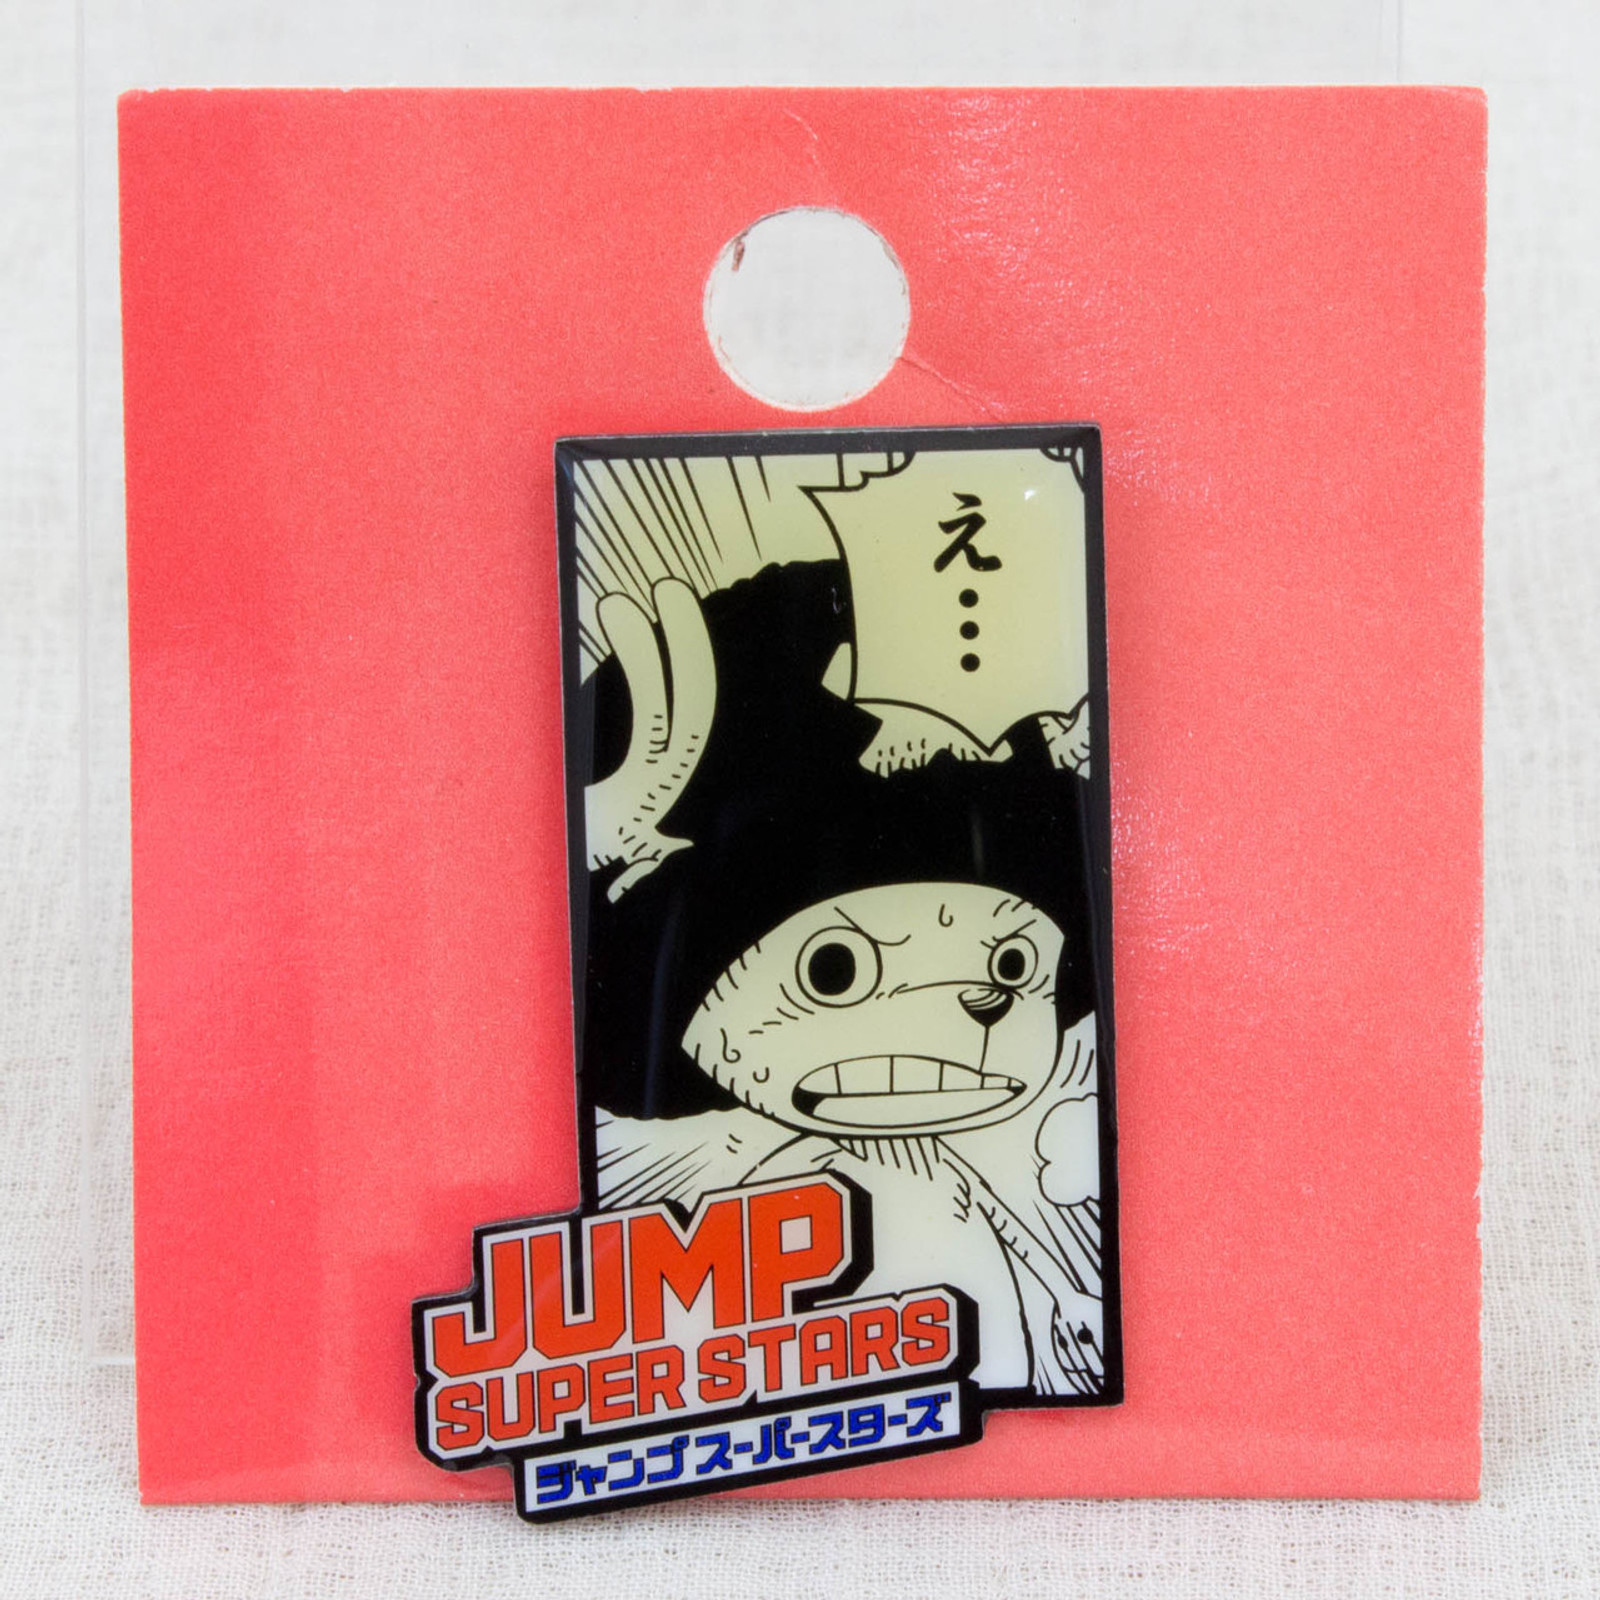 Shonen Jump Super Stars Pins ONE PIECE Chopper JAPAN ANIME MANGA